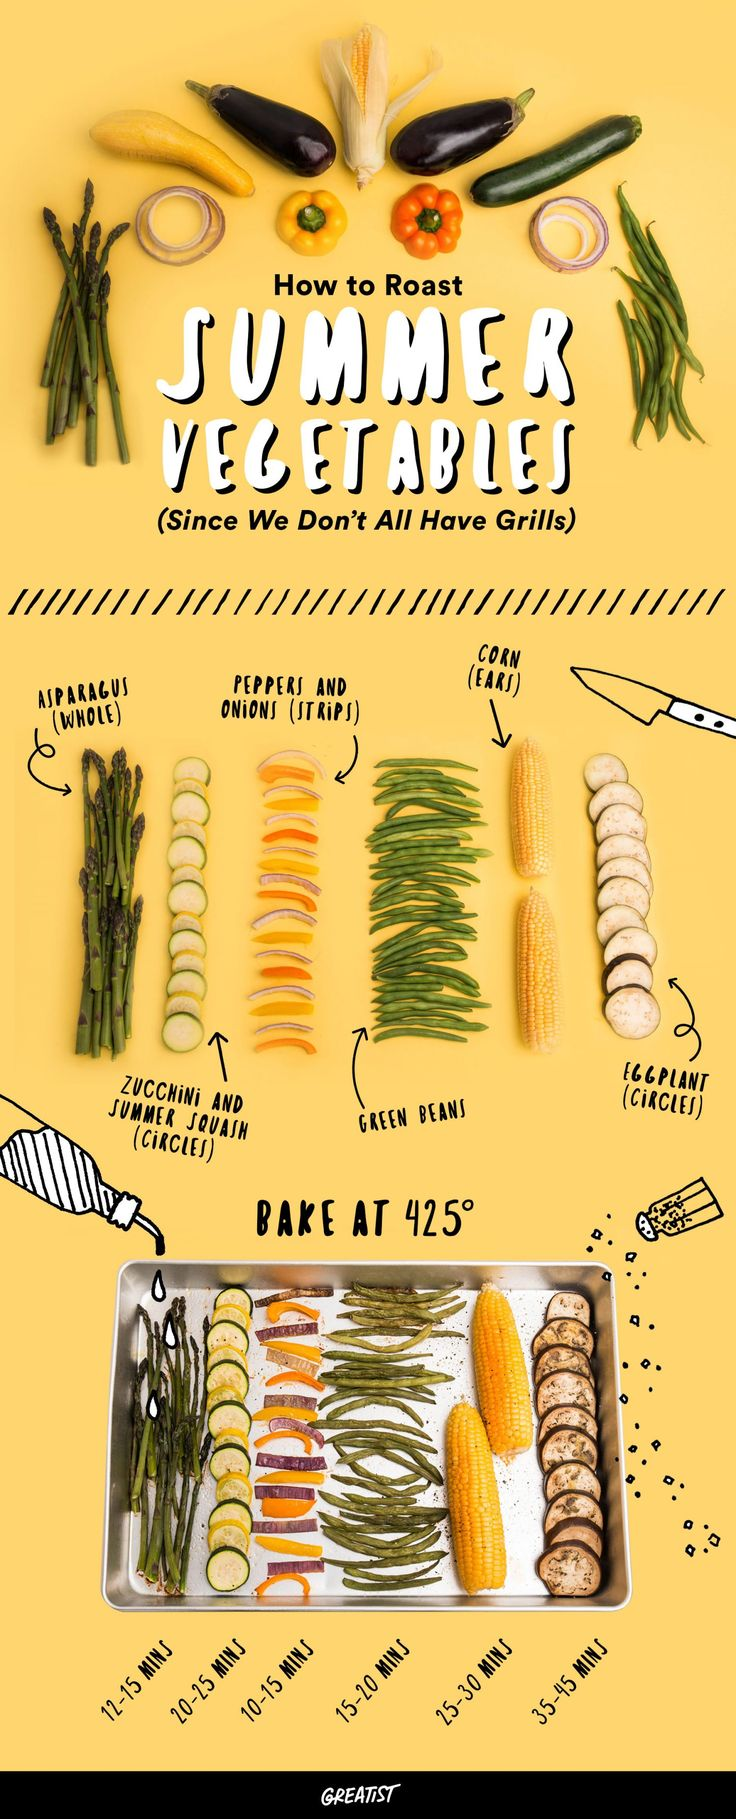 Summer veggies are about to get LIT. #greatist htt…